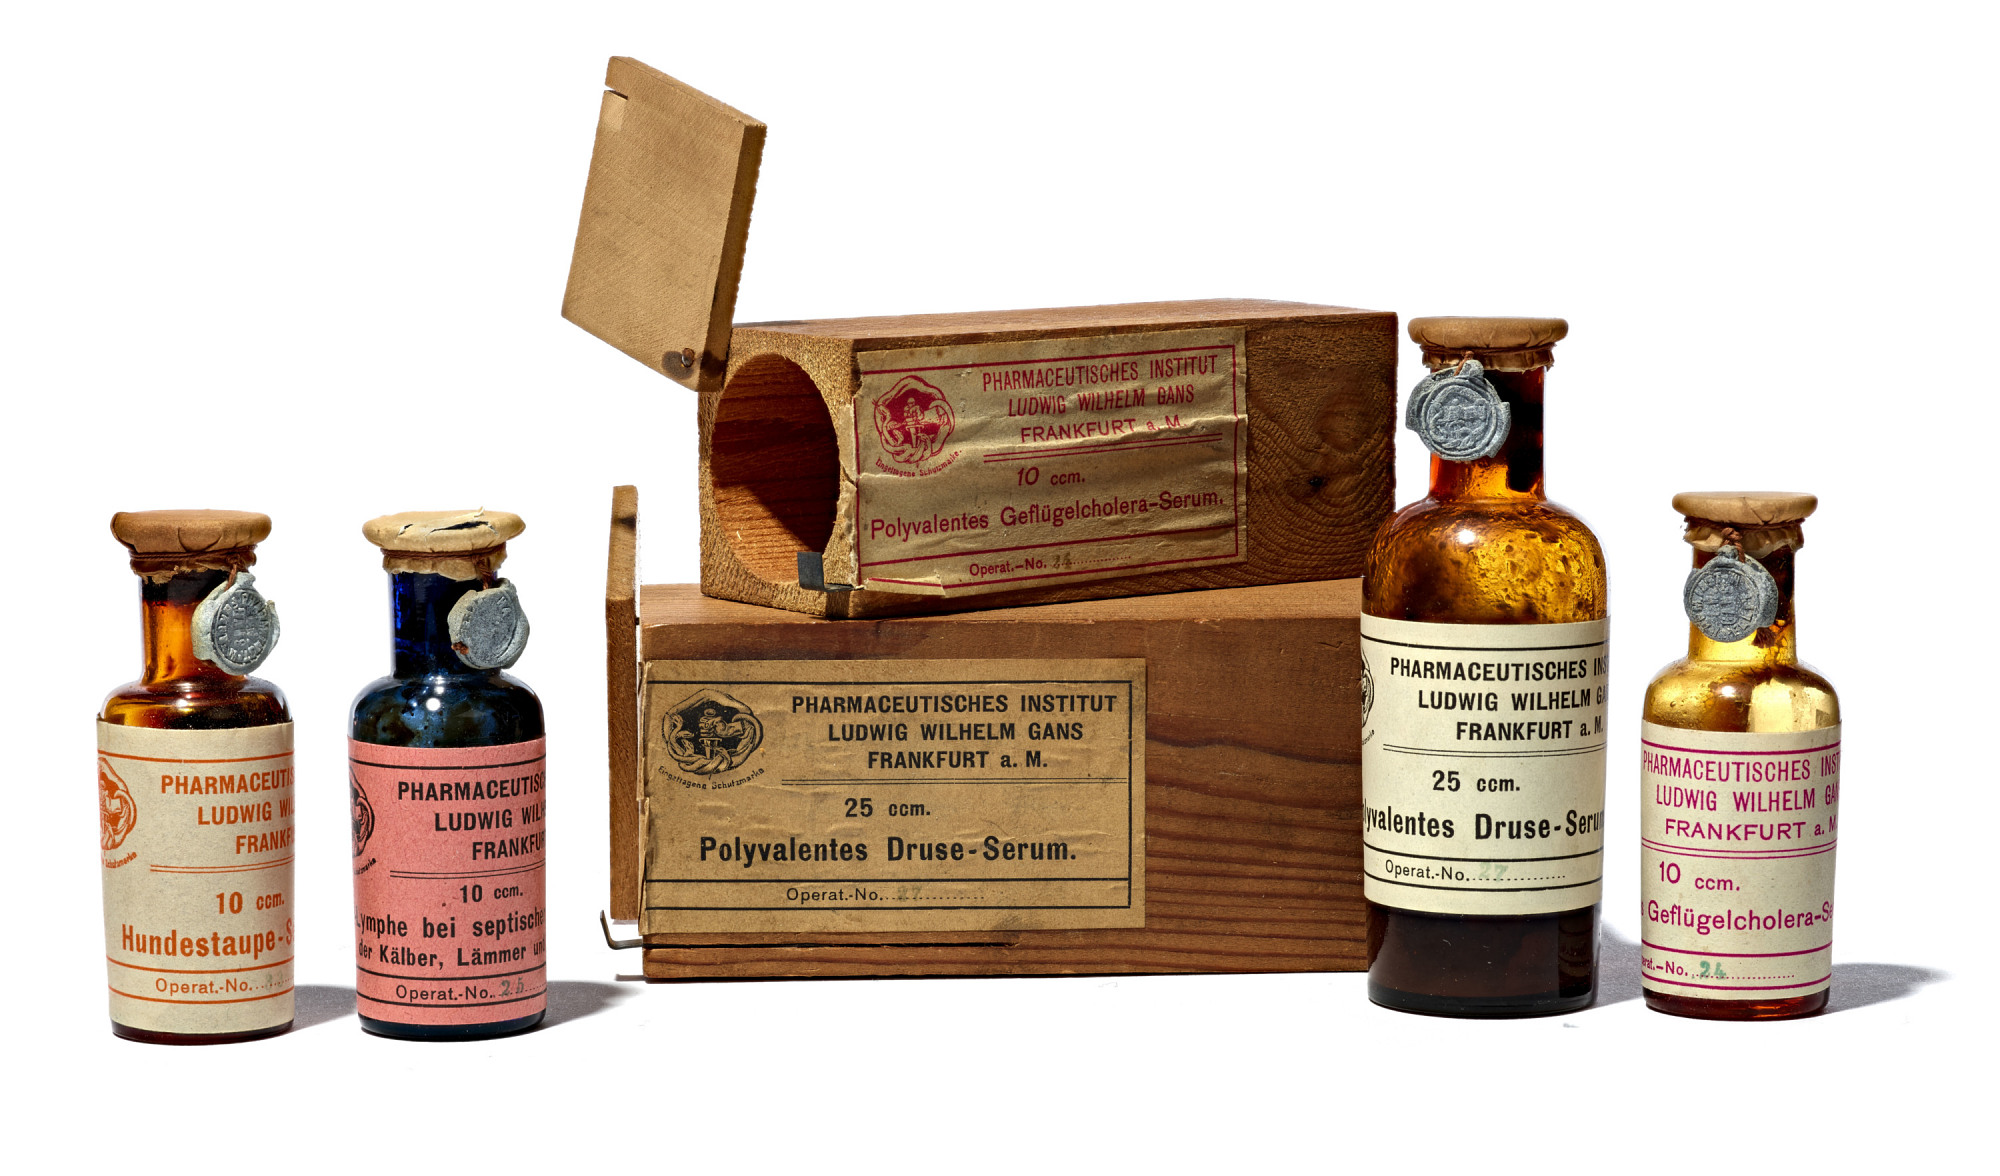 Early 20th-century serums for canine distemper, chicken cholera, and other livestock infections made by Ludwig Wilhelm Gans, Frankfort, Germany